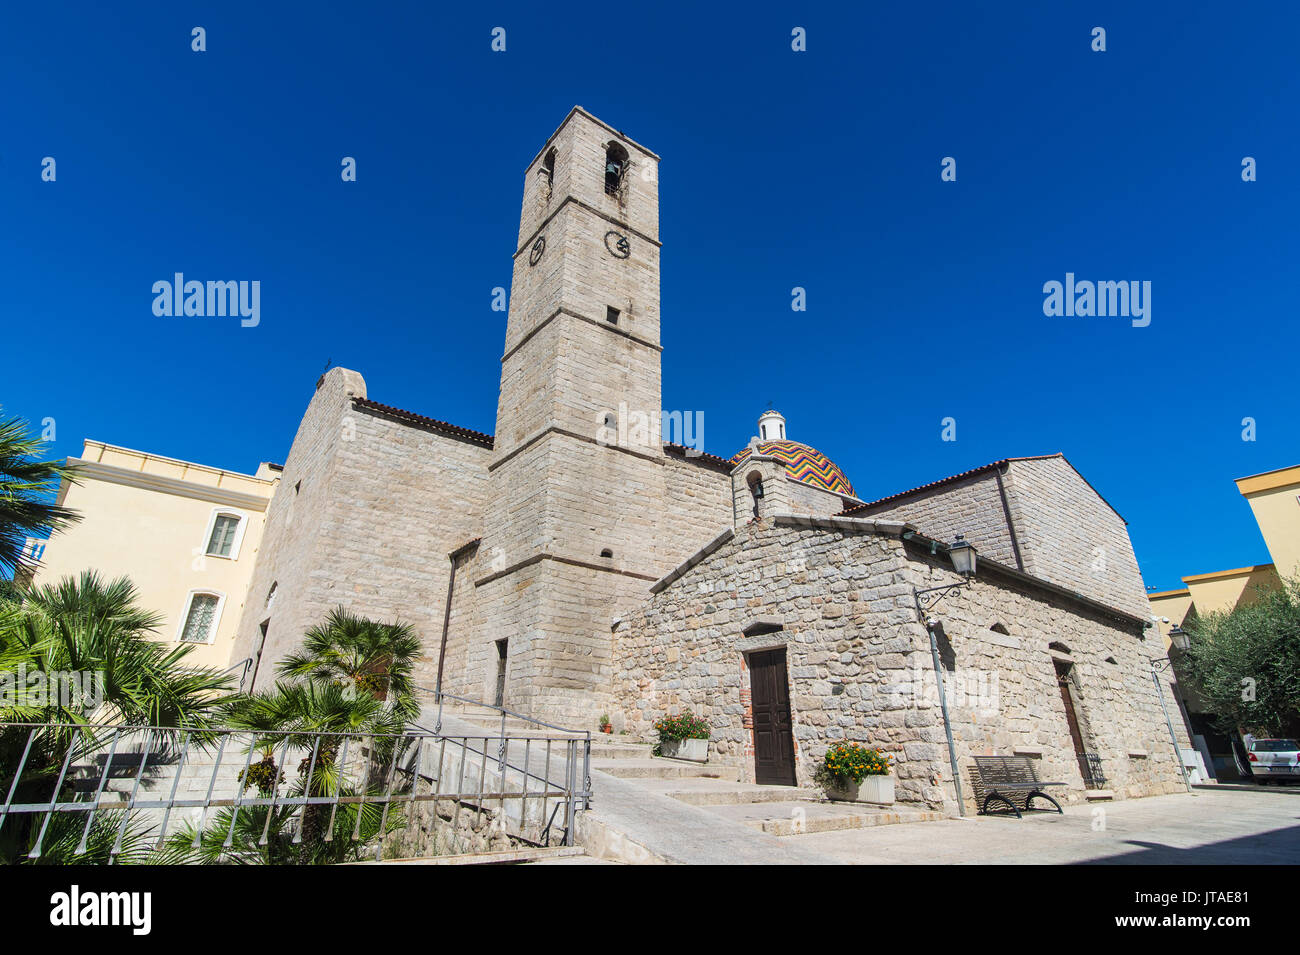 Church of St. Paul the Apostle, Olbia, Sardinia, Italy, Mediterranean, Europe - Stock Image